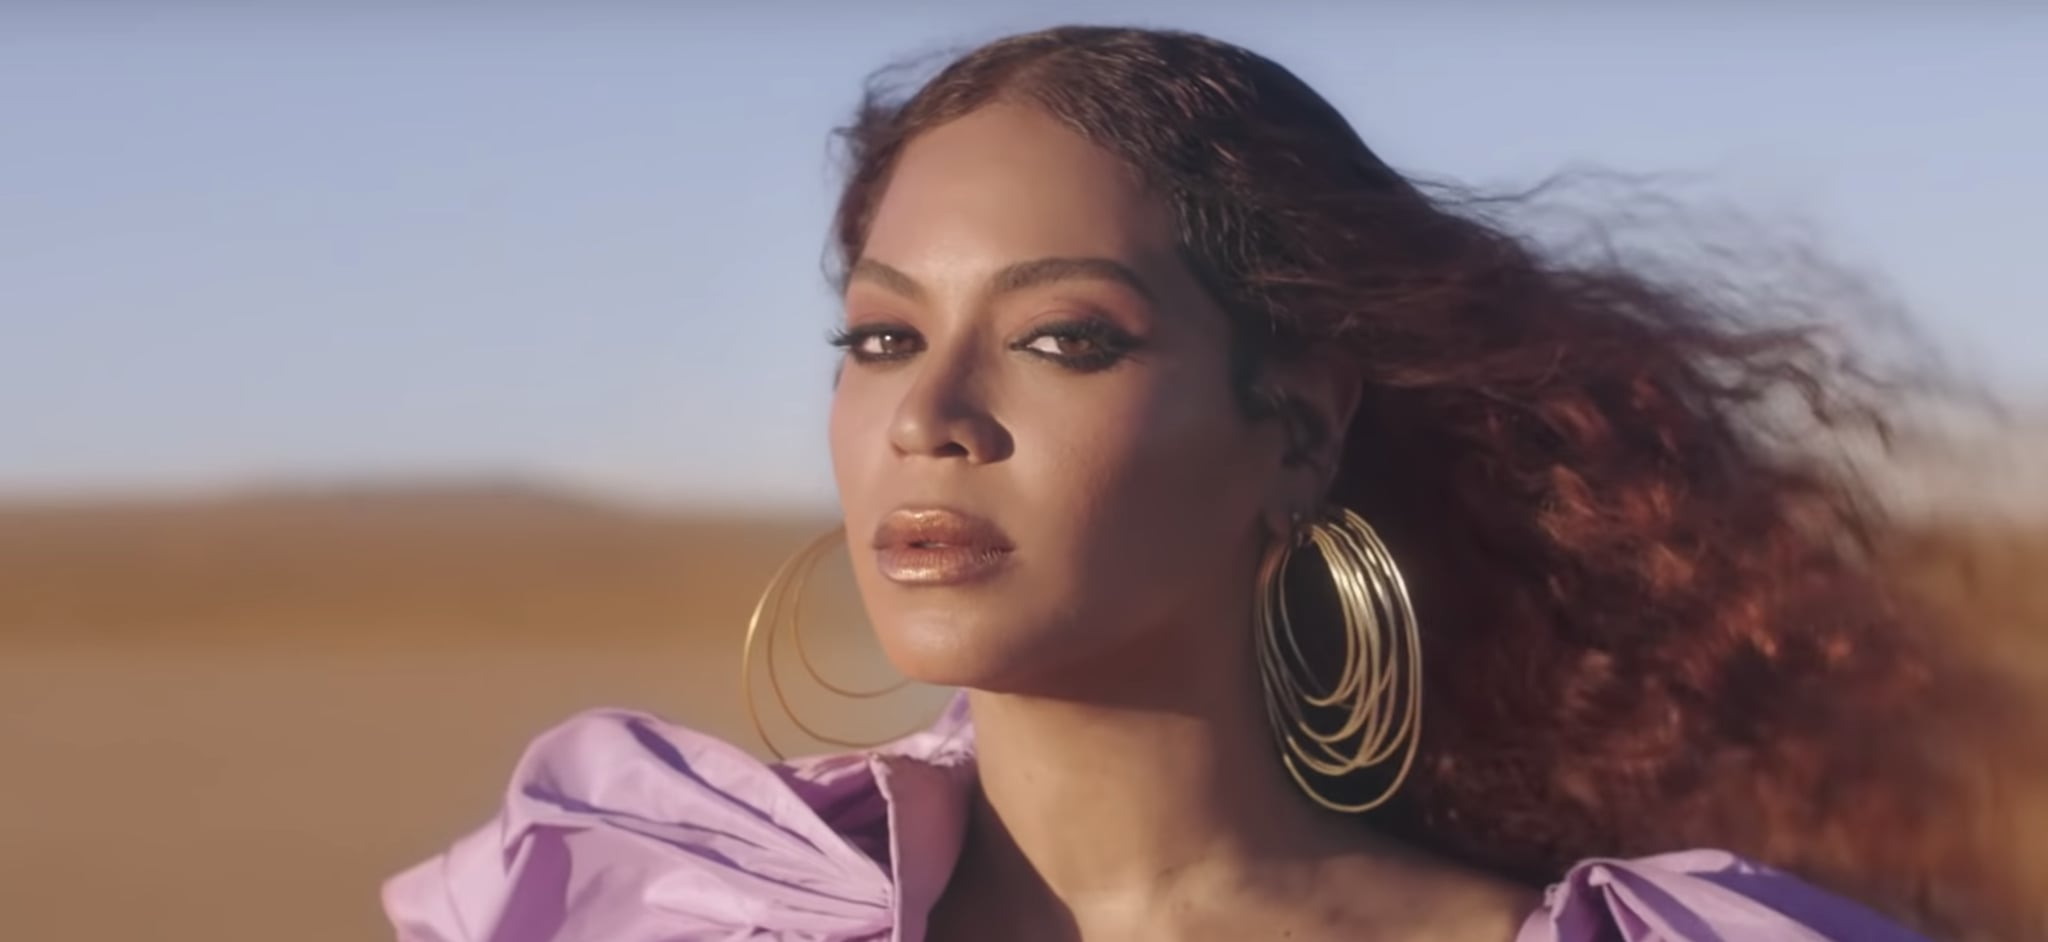 "Beyoncé and Blue Ivy's Best Beauty Looks in ""Spirit Video 